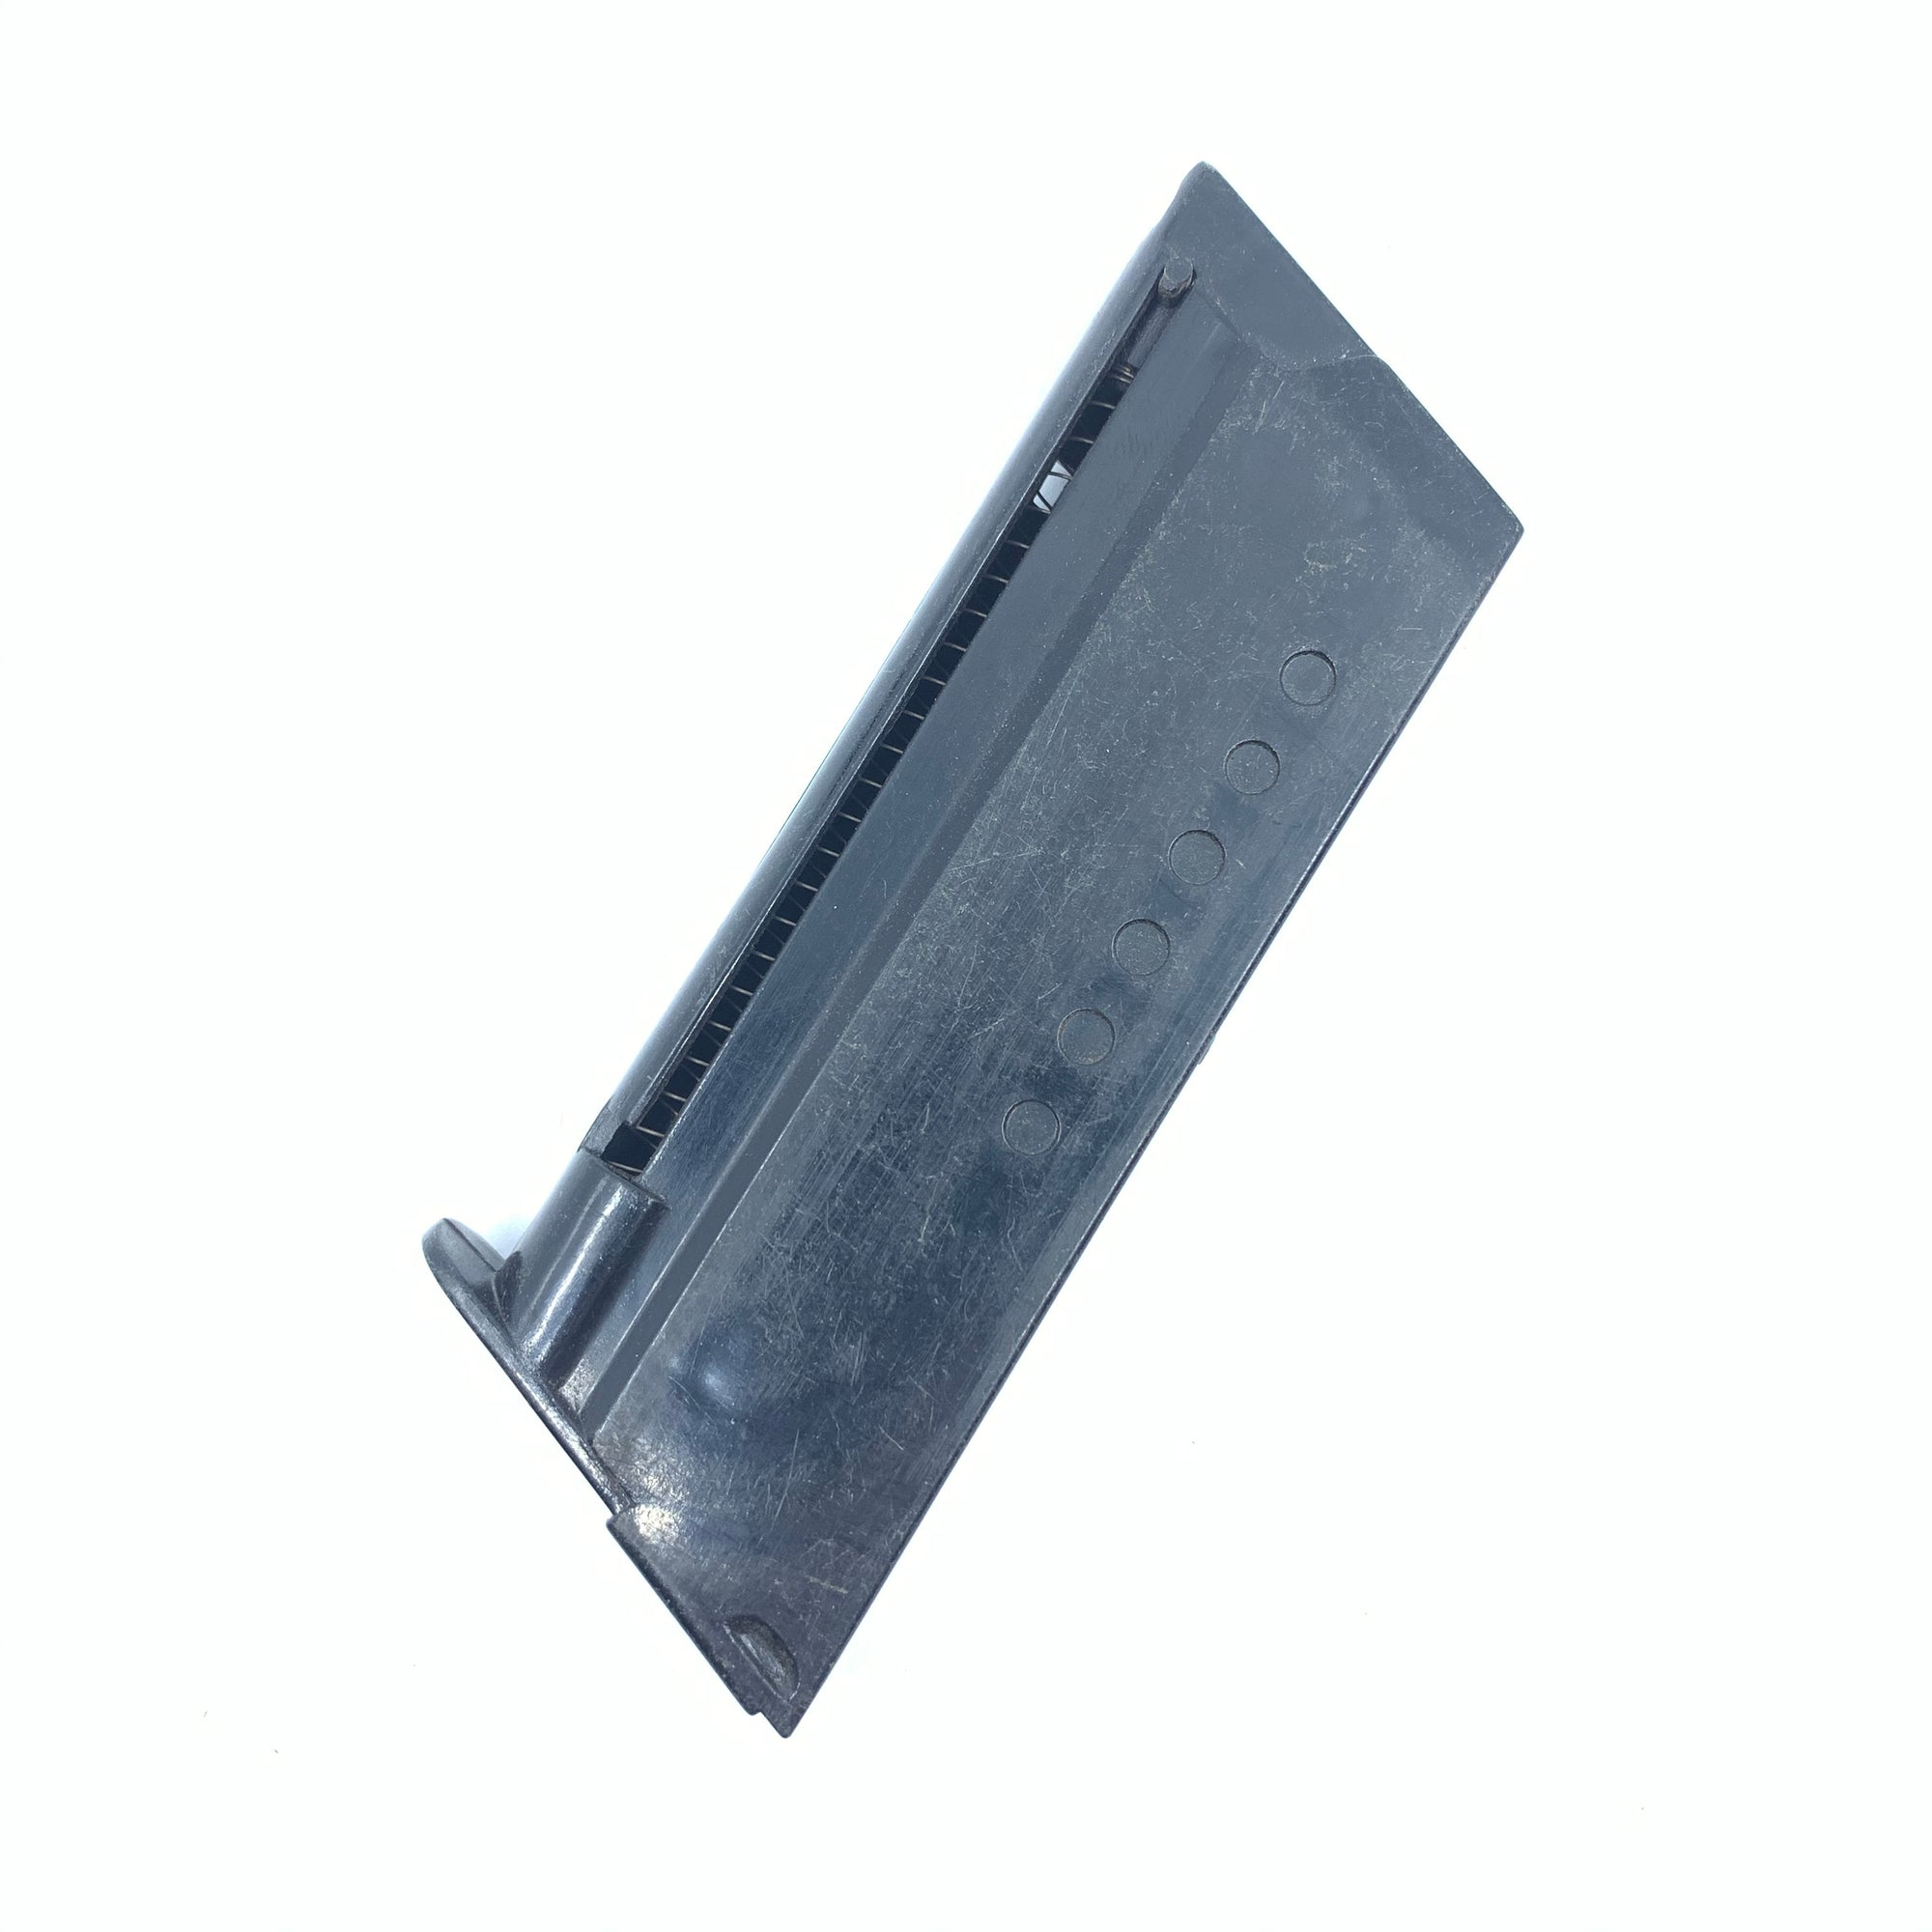 Automag 3 Air Soft Pistol Magazines